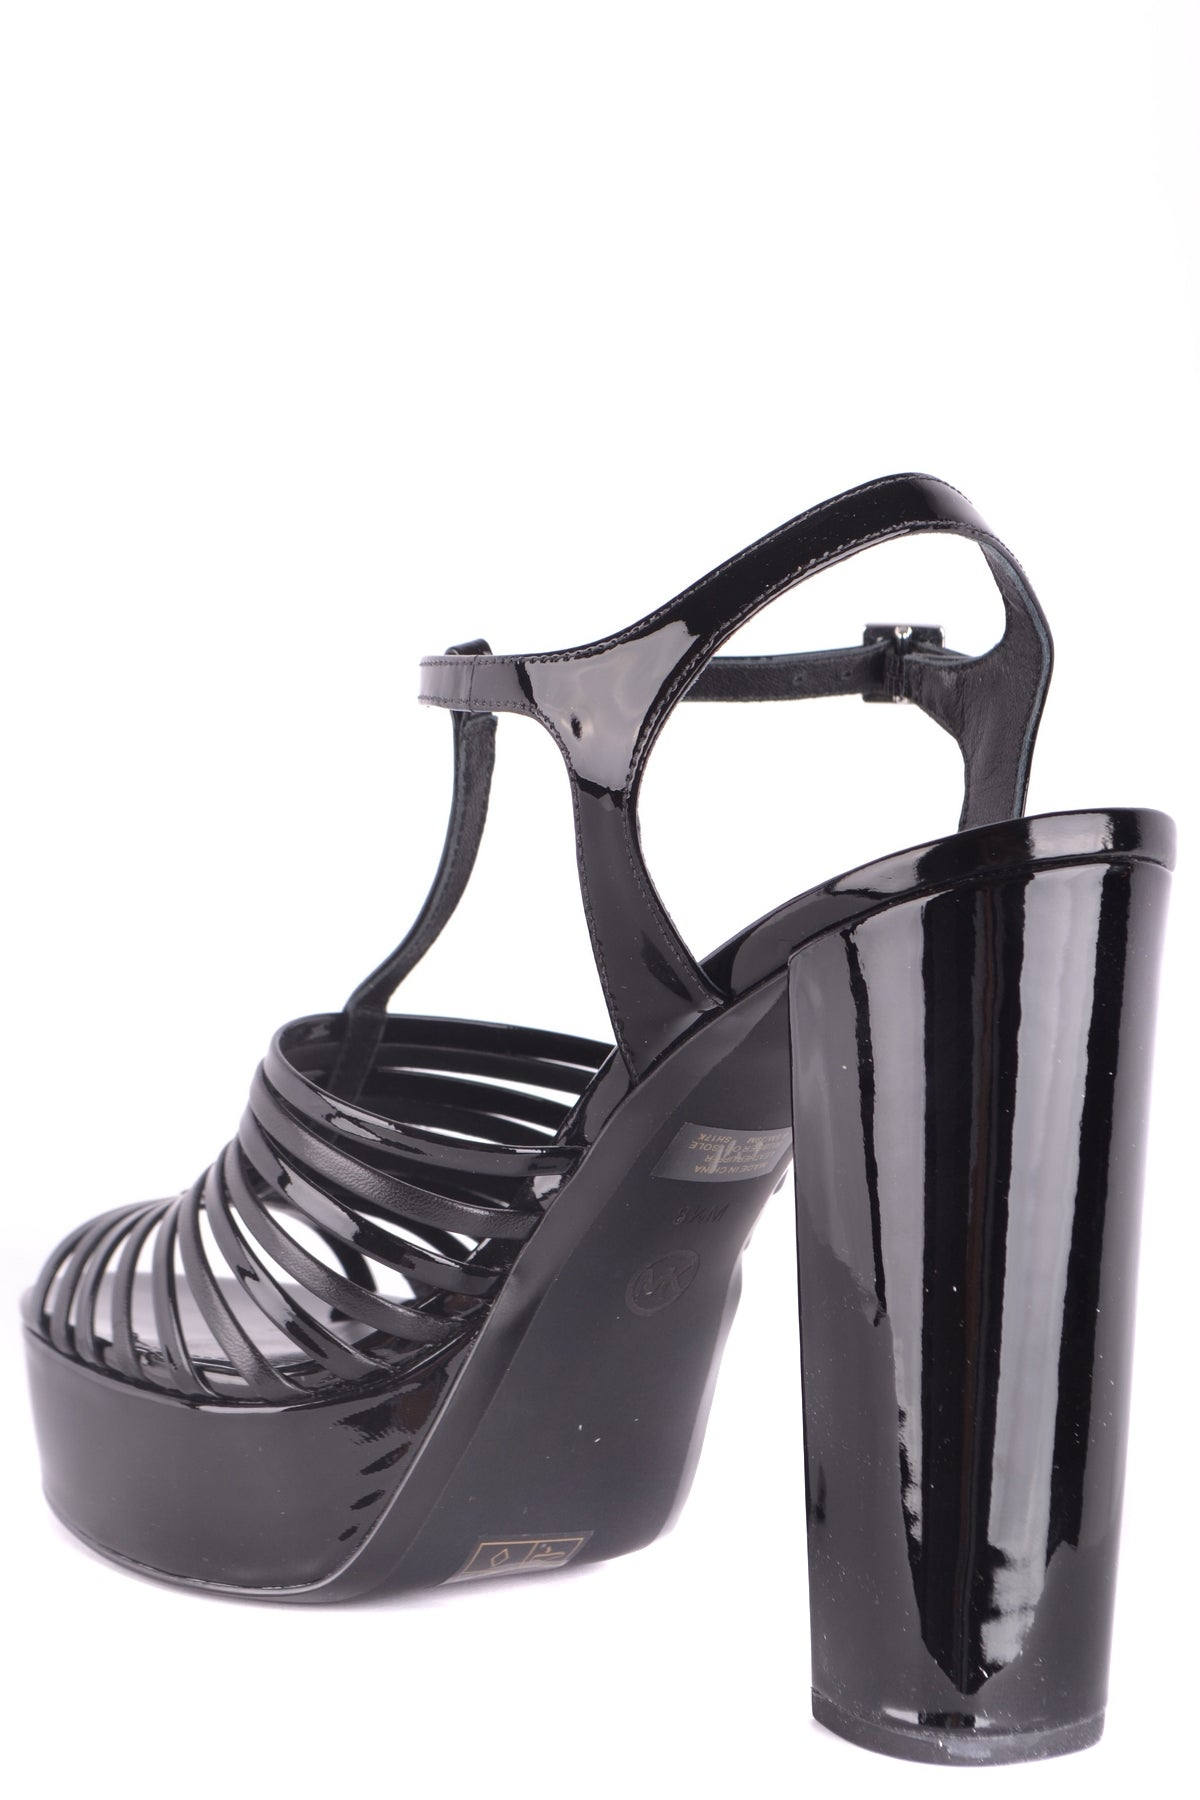 Shoes Michael Kors-Sandals - WOMAN-Product Details Type Of Accessory: ShoesSeason: Spring / SummerTerms: New With LabelHeel'S Height: 13 CmMain Color: BlackGender: WomanMade In: ChinaManufacturer Part Number: 40R8Lehs2ASize: EuYear: 2018Platform'S Height: 3 CmComposition: Leather 100%-Keyomi-Sook